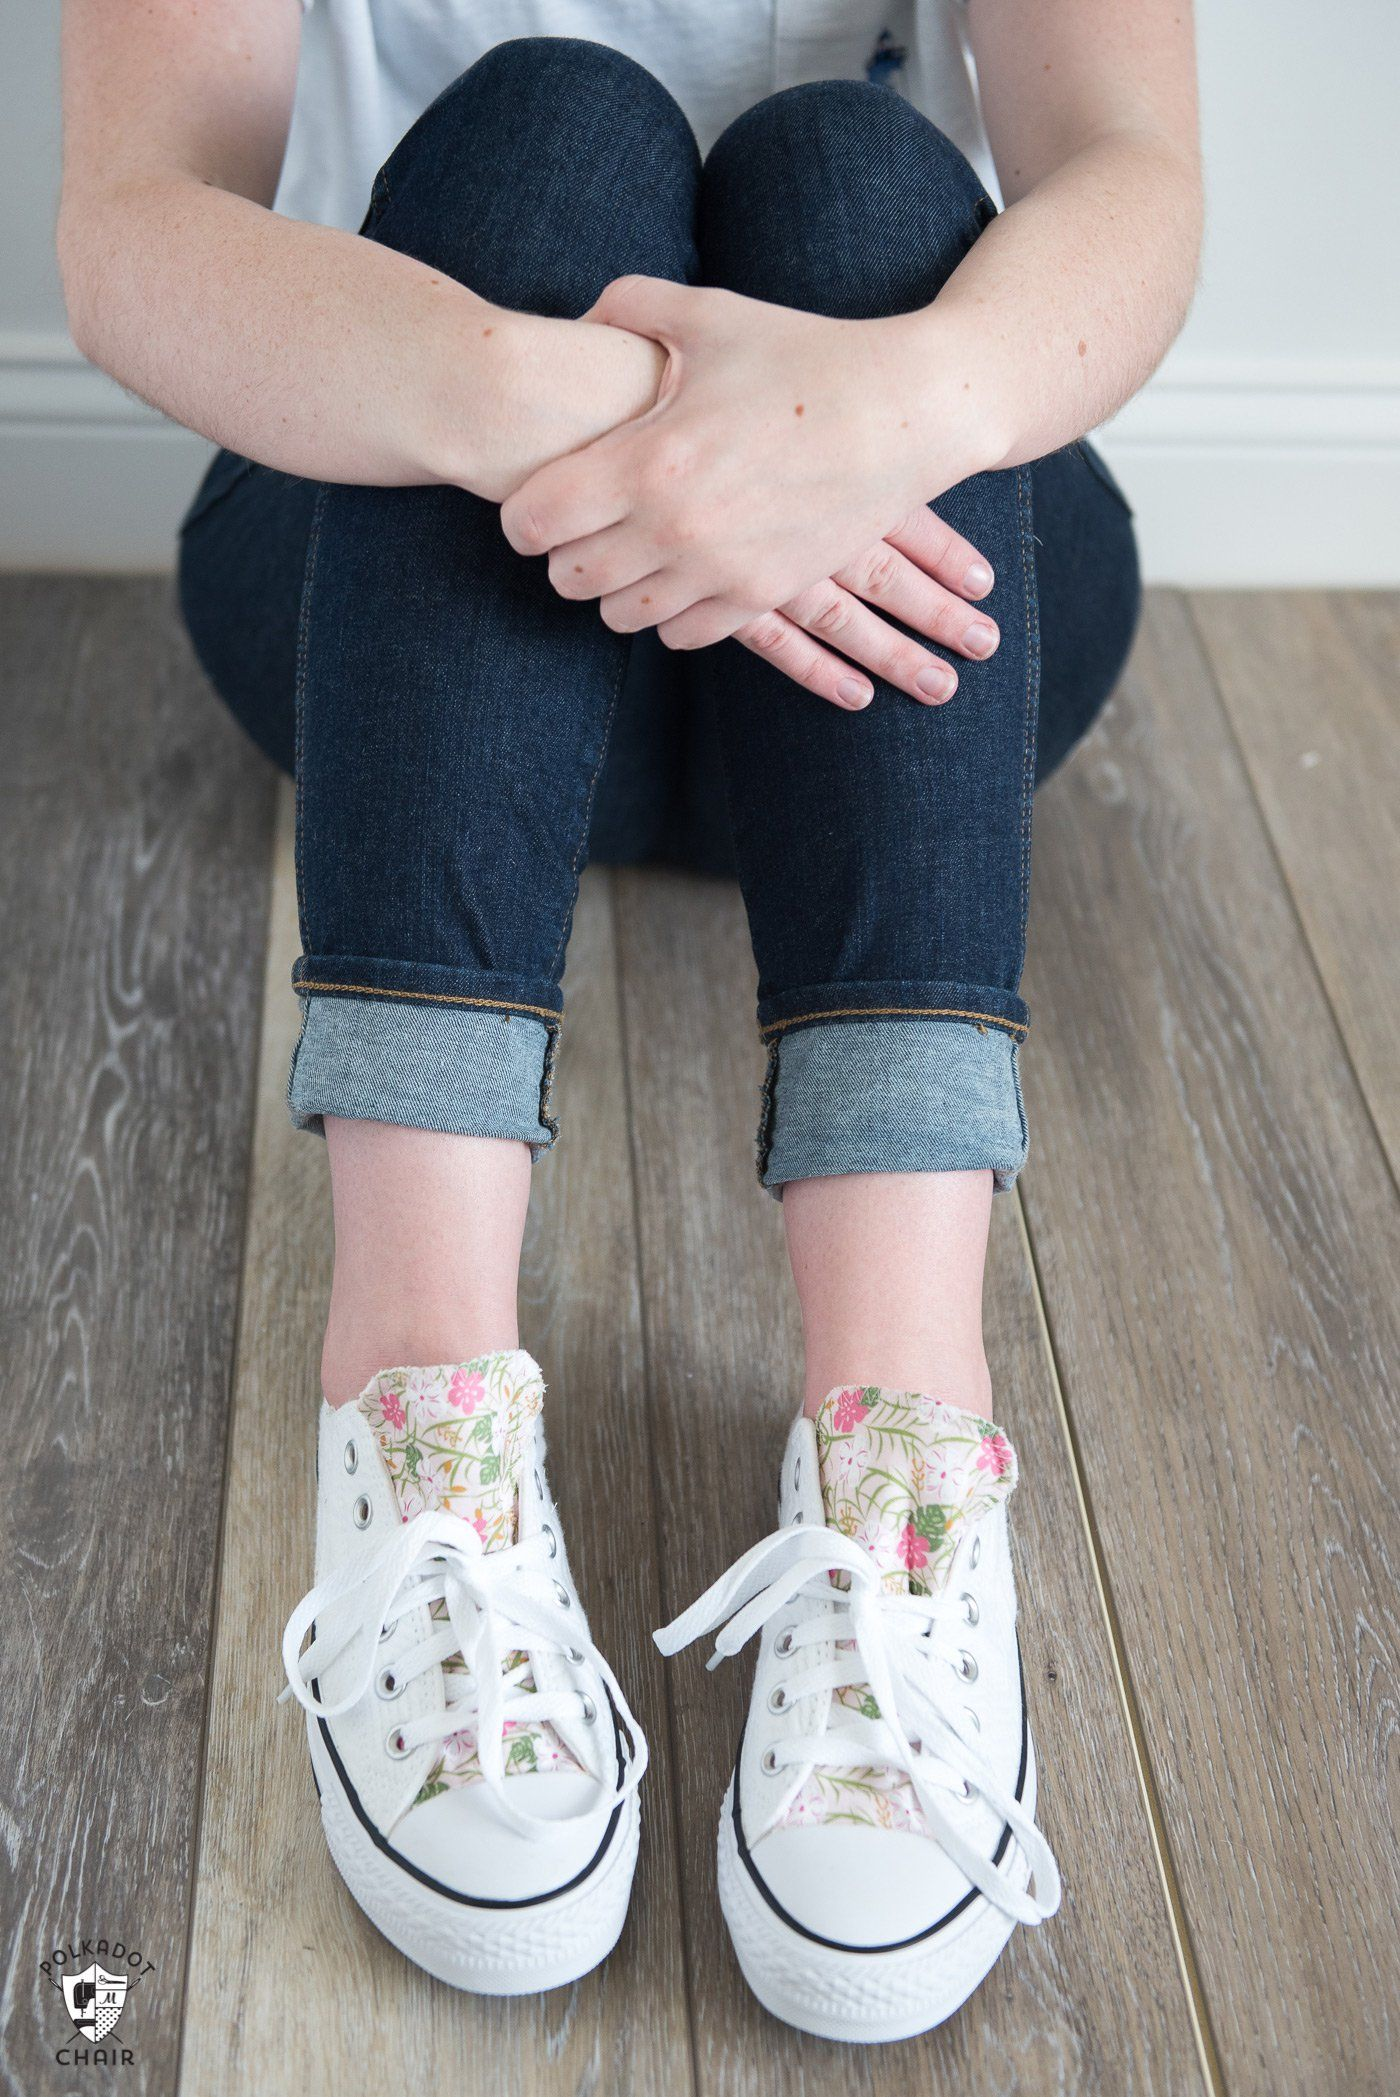 809cf3e998ab How to customize your converse with fabric - a DIY way to decorate the  tongue of your converse shoes. How to add fabric to shoes  DIYfashion   DIYConverse ...